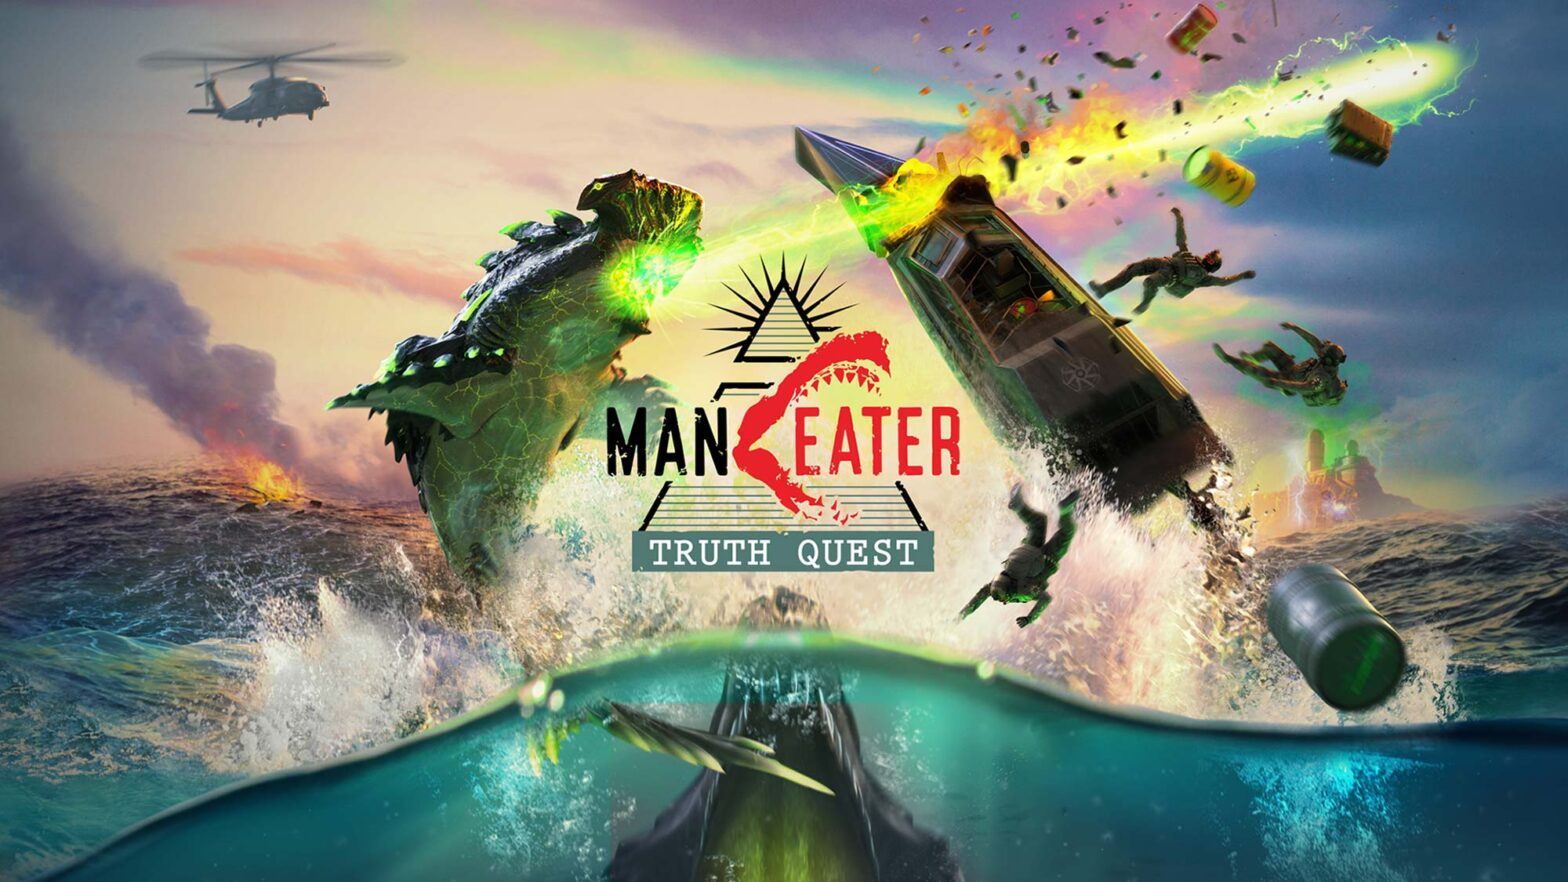 Maneater: Truth Quest Downloadable Content for Maneater